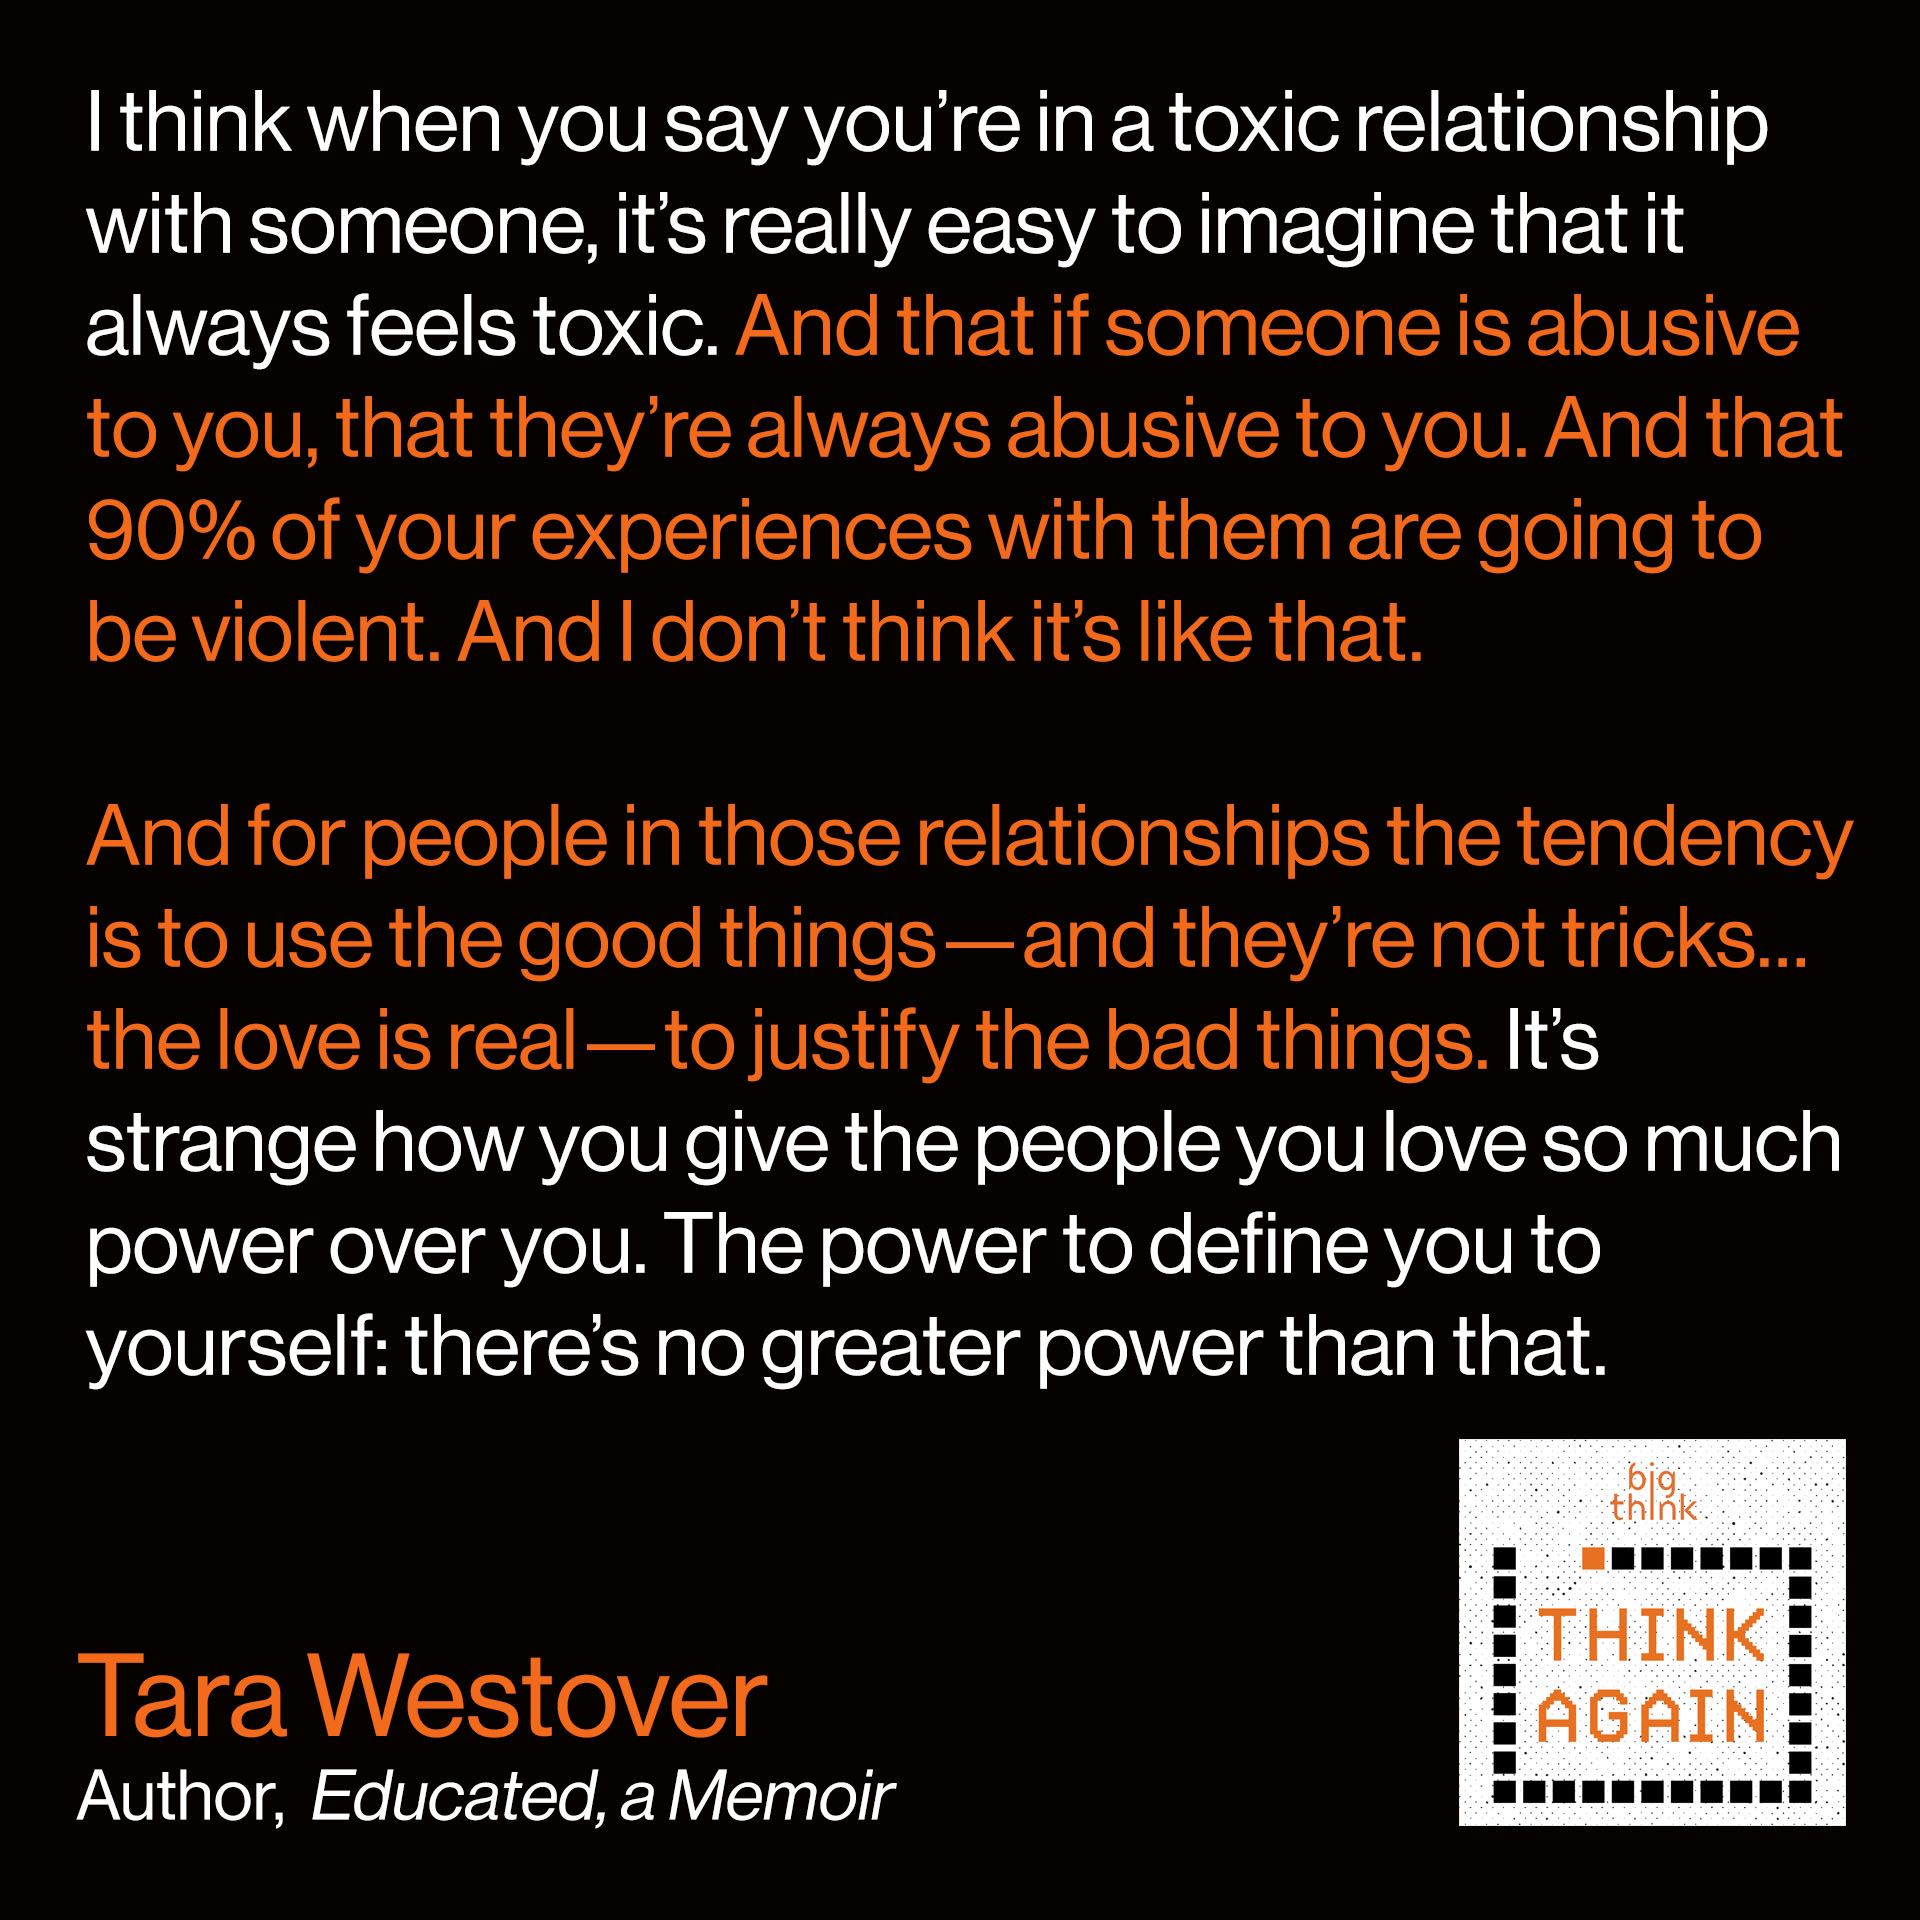 Tara Westover quote: I think when you say you're in a toxic relationship with someone, it's really easy to imagine that it always feels toxic. And that if someone is abusive to you that they're always abusive to you. And that 90% of your experiences with them are going to be violent. And I don't think it's like that. And for people in those relationships the tendency is to use the good things—and they're not tricks…the love is real…to justify the bad things. It's strange how you give the people you love so much power over you. The power to define you to yourself…there's no greater power than that.